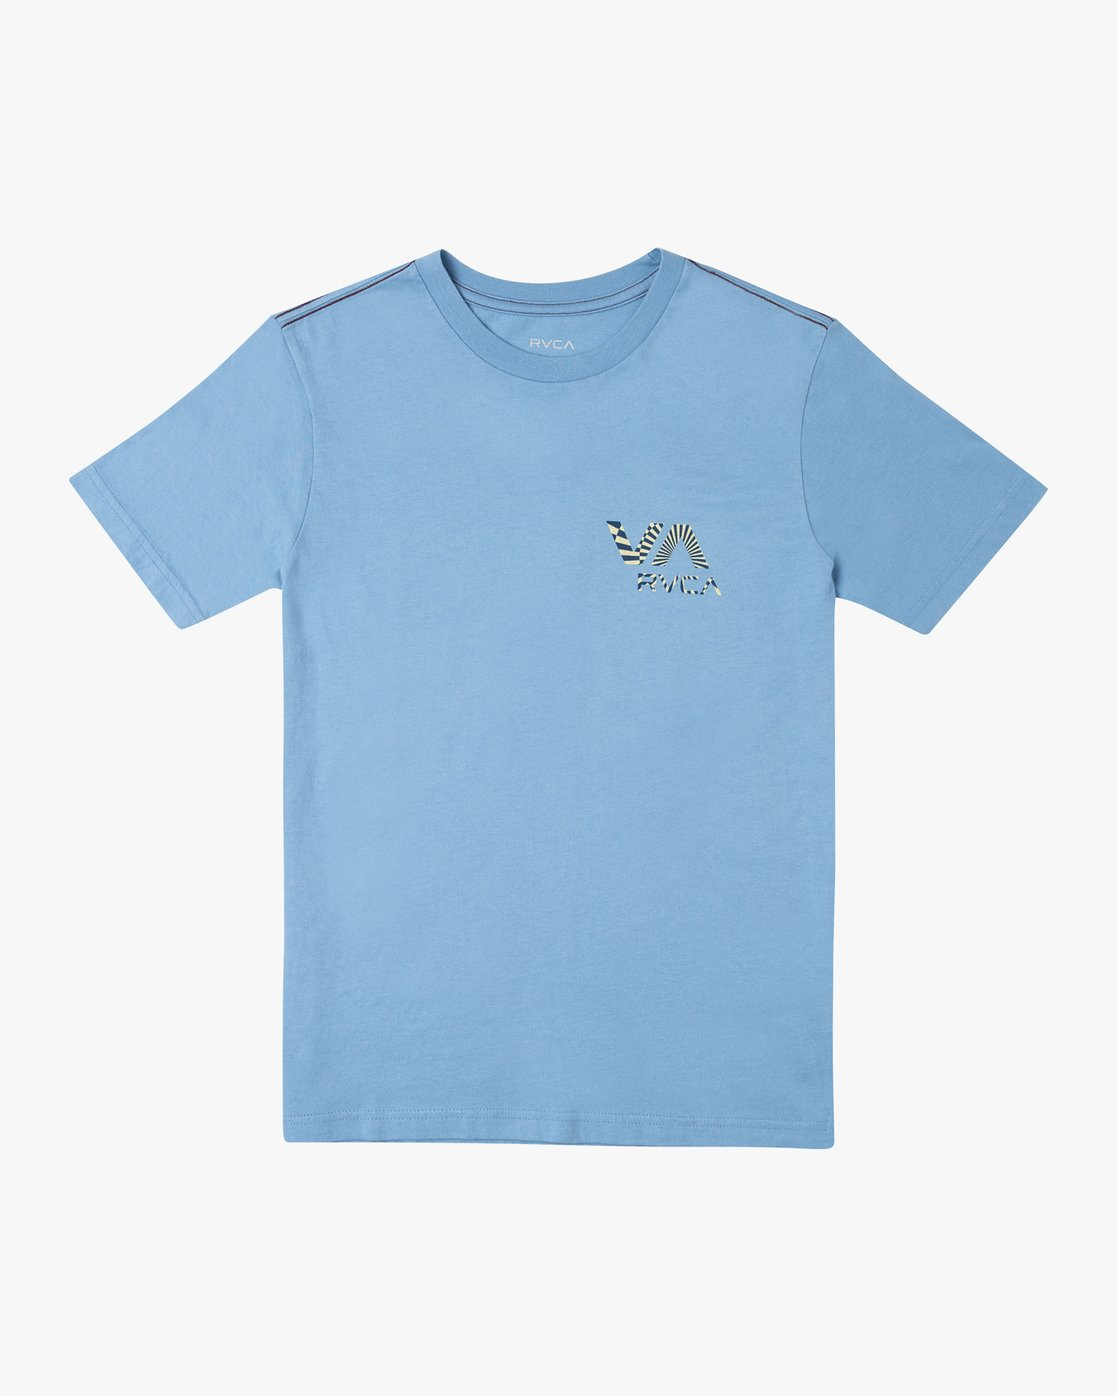 0 BOYS MAYDAY SHORT SLEEVE T-SHIRT Blue B4062RMA RVCA